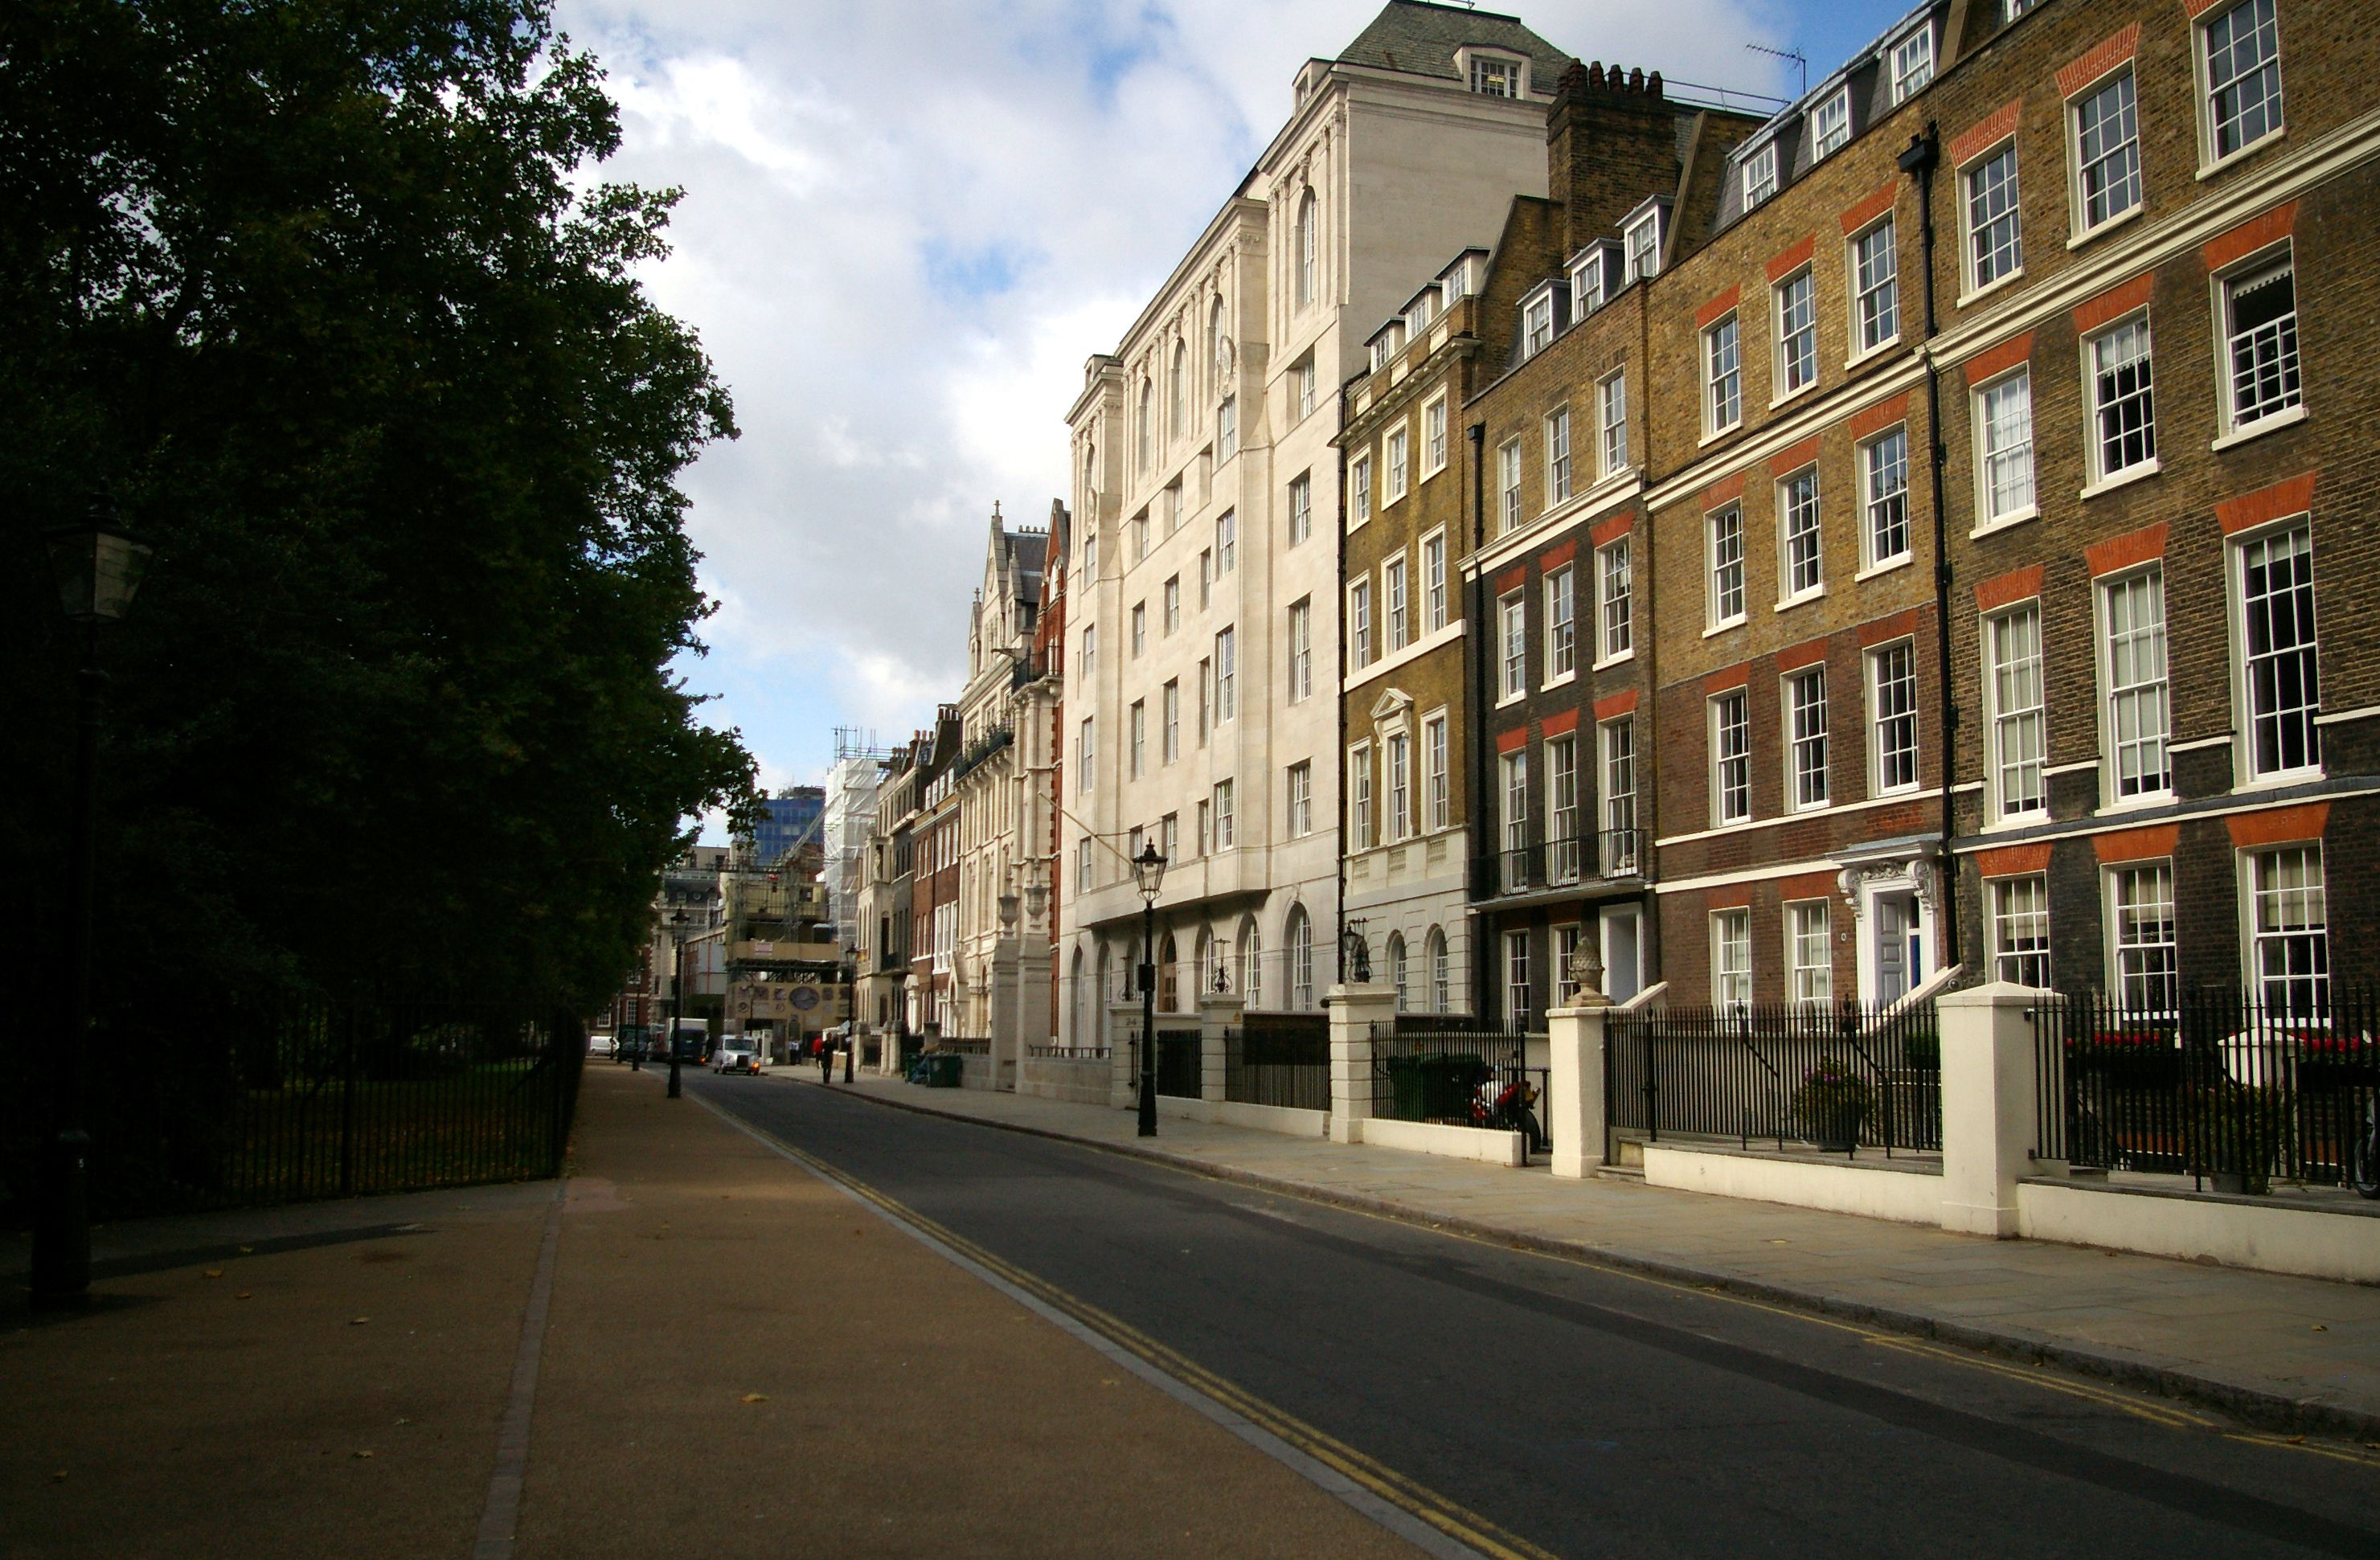 Harry Potter Film Locations In London